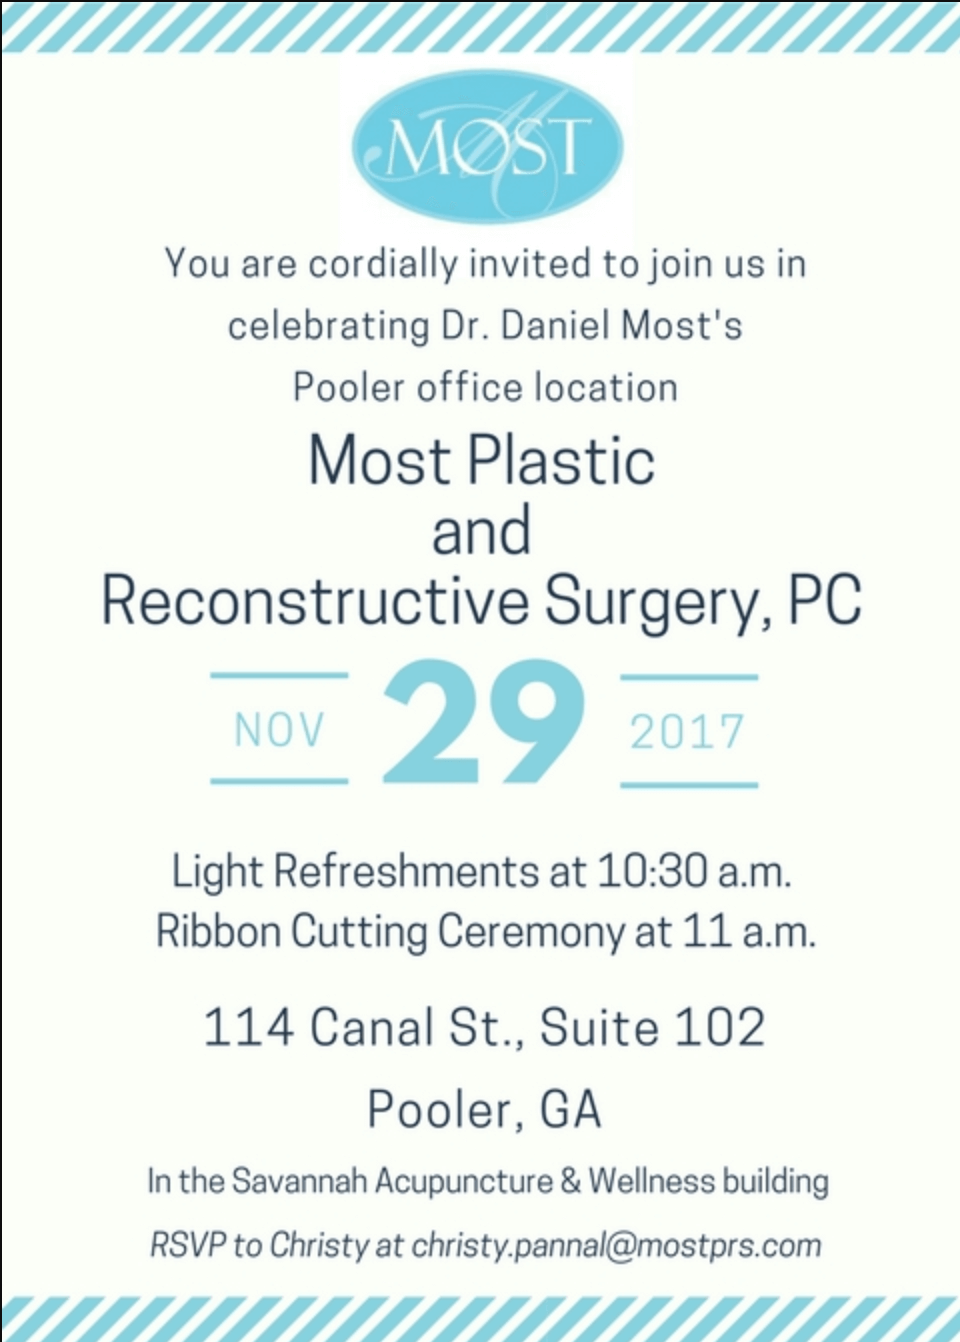 Most Plastic and Reconstructive Surgery, PC, Pooler Grand Opening